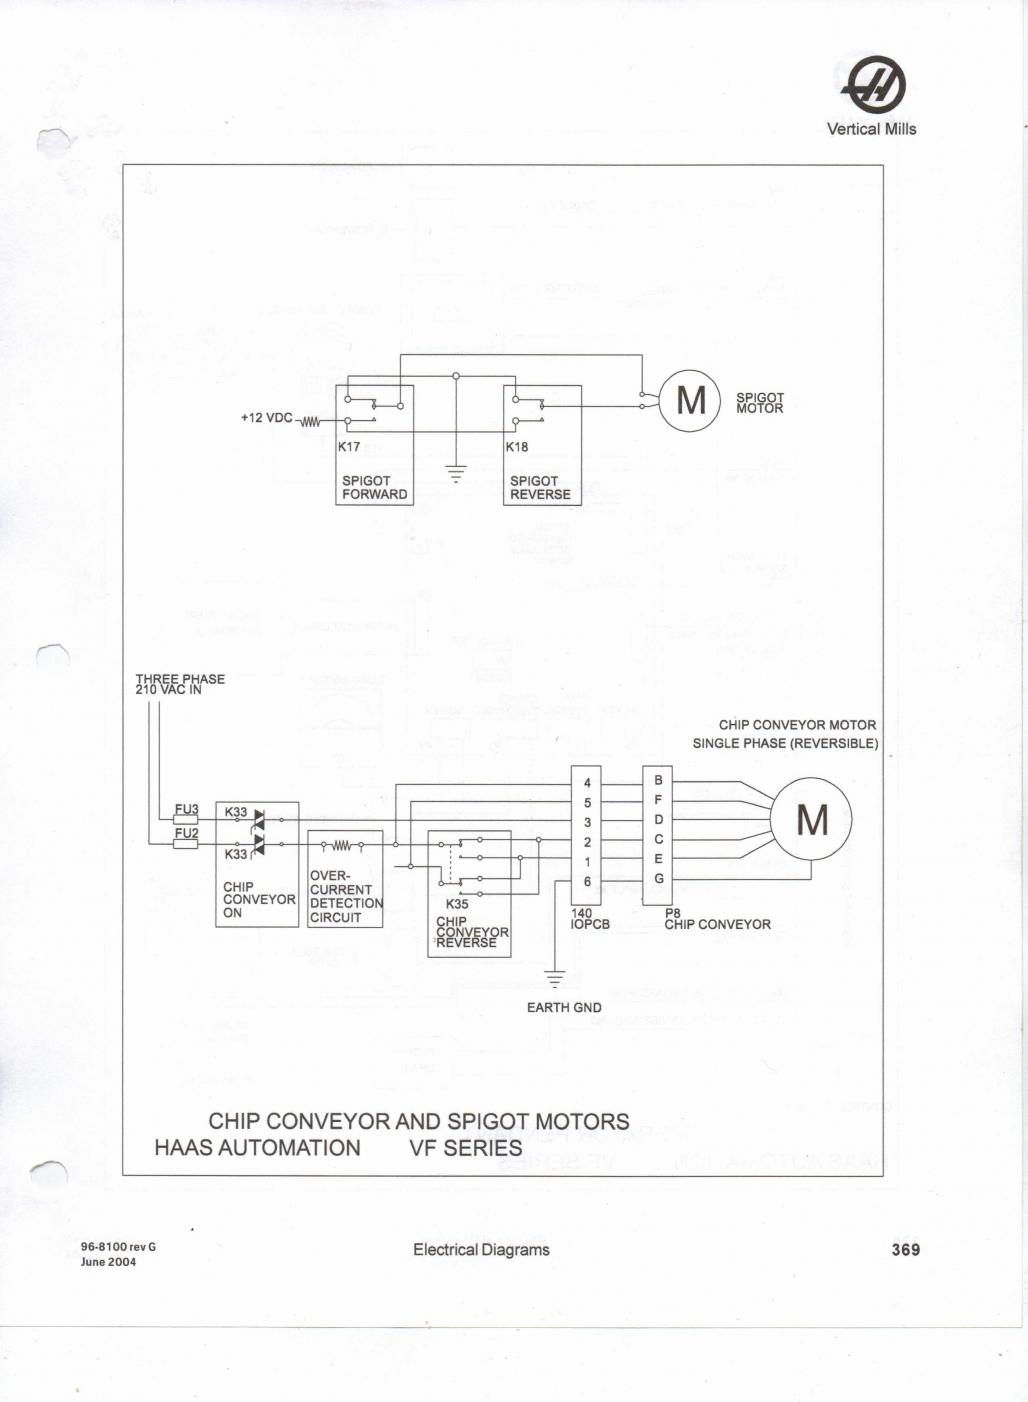 Haas Wiring Diagram - Wiring Diagram Name on electrical diagrams, series and parallel circuits diagrams, battery diagrams, troubleshooting diagrams, lighting diagrams, motor diagrams, electronic circuit diagrams, switch diagrams, led circuit diagrams, transformer diagrams, pinout diagrams, gmc fuse box diagrams, friendship bracelet diagrams, smart car diagrams, honda motorcycle repair diagrams, internet of things diagrams, sincgars radio configurations diagrams, hvac diagrams, engine diagrams,